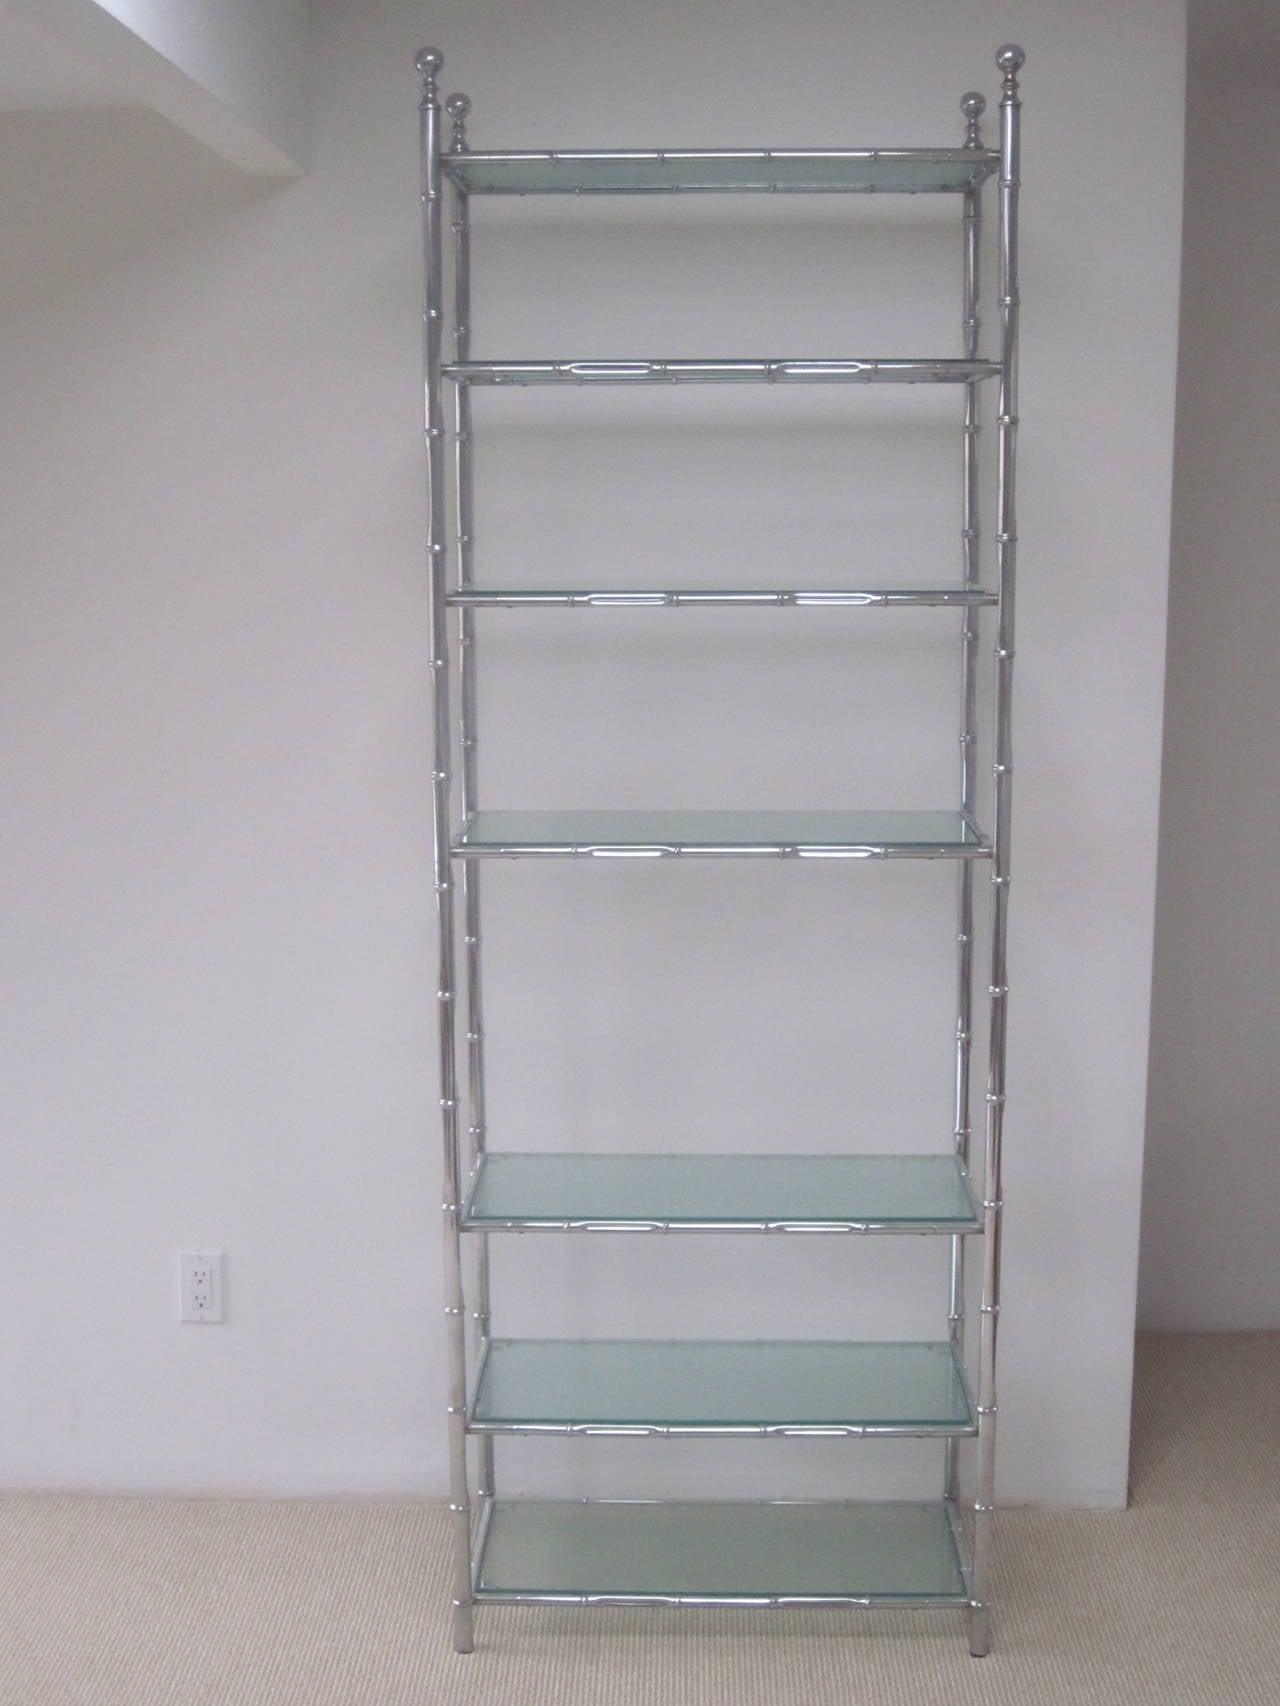 Elegant and practical French Mid-Century nickeled faux bamboo etagere, shelves, storage, bookcase or vitrine in the modern neoclassical tradition with hand worked sand-blasted / frosted glass shelves. Glass shelves can be replaced to suit taste.